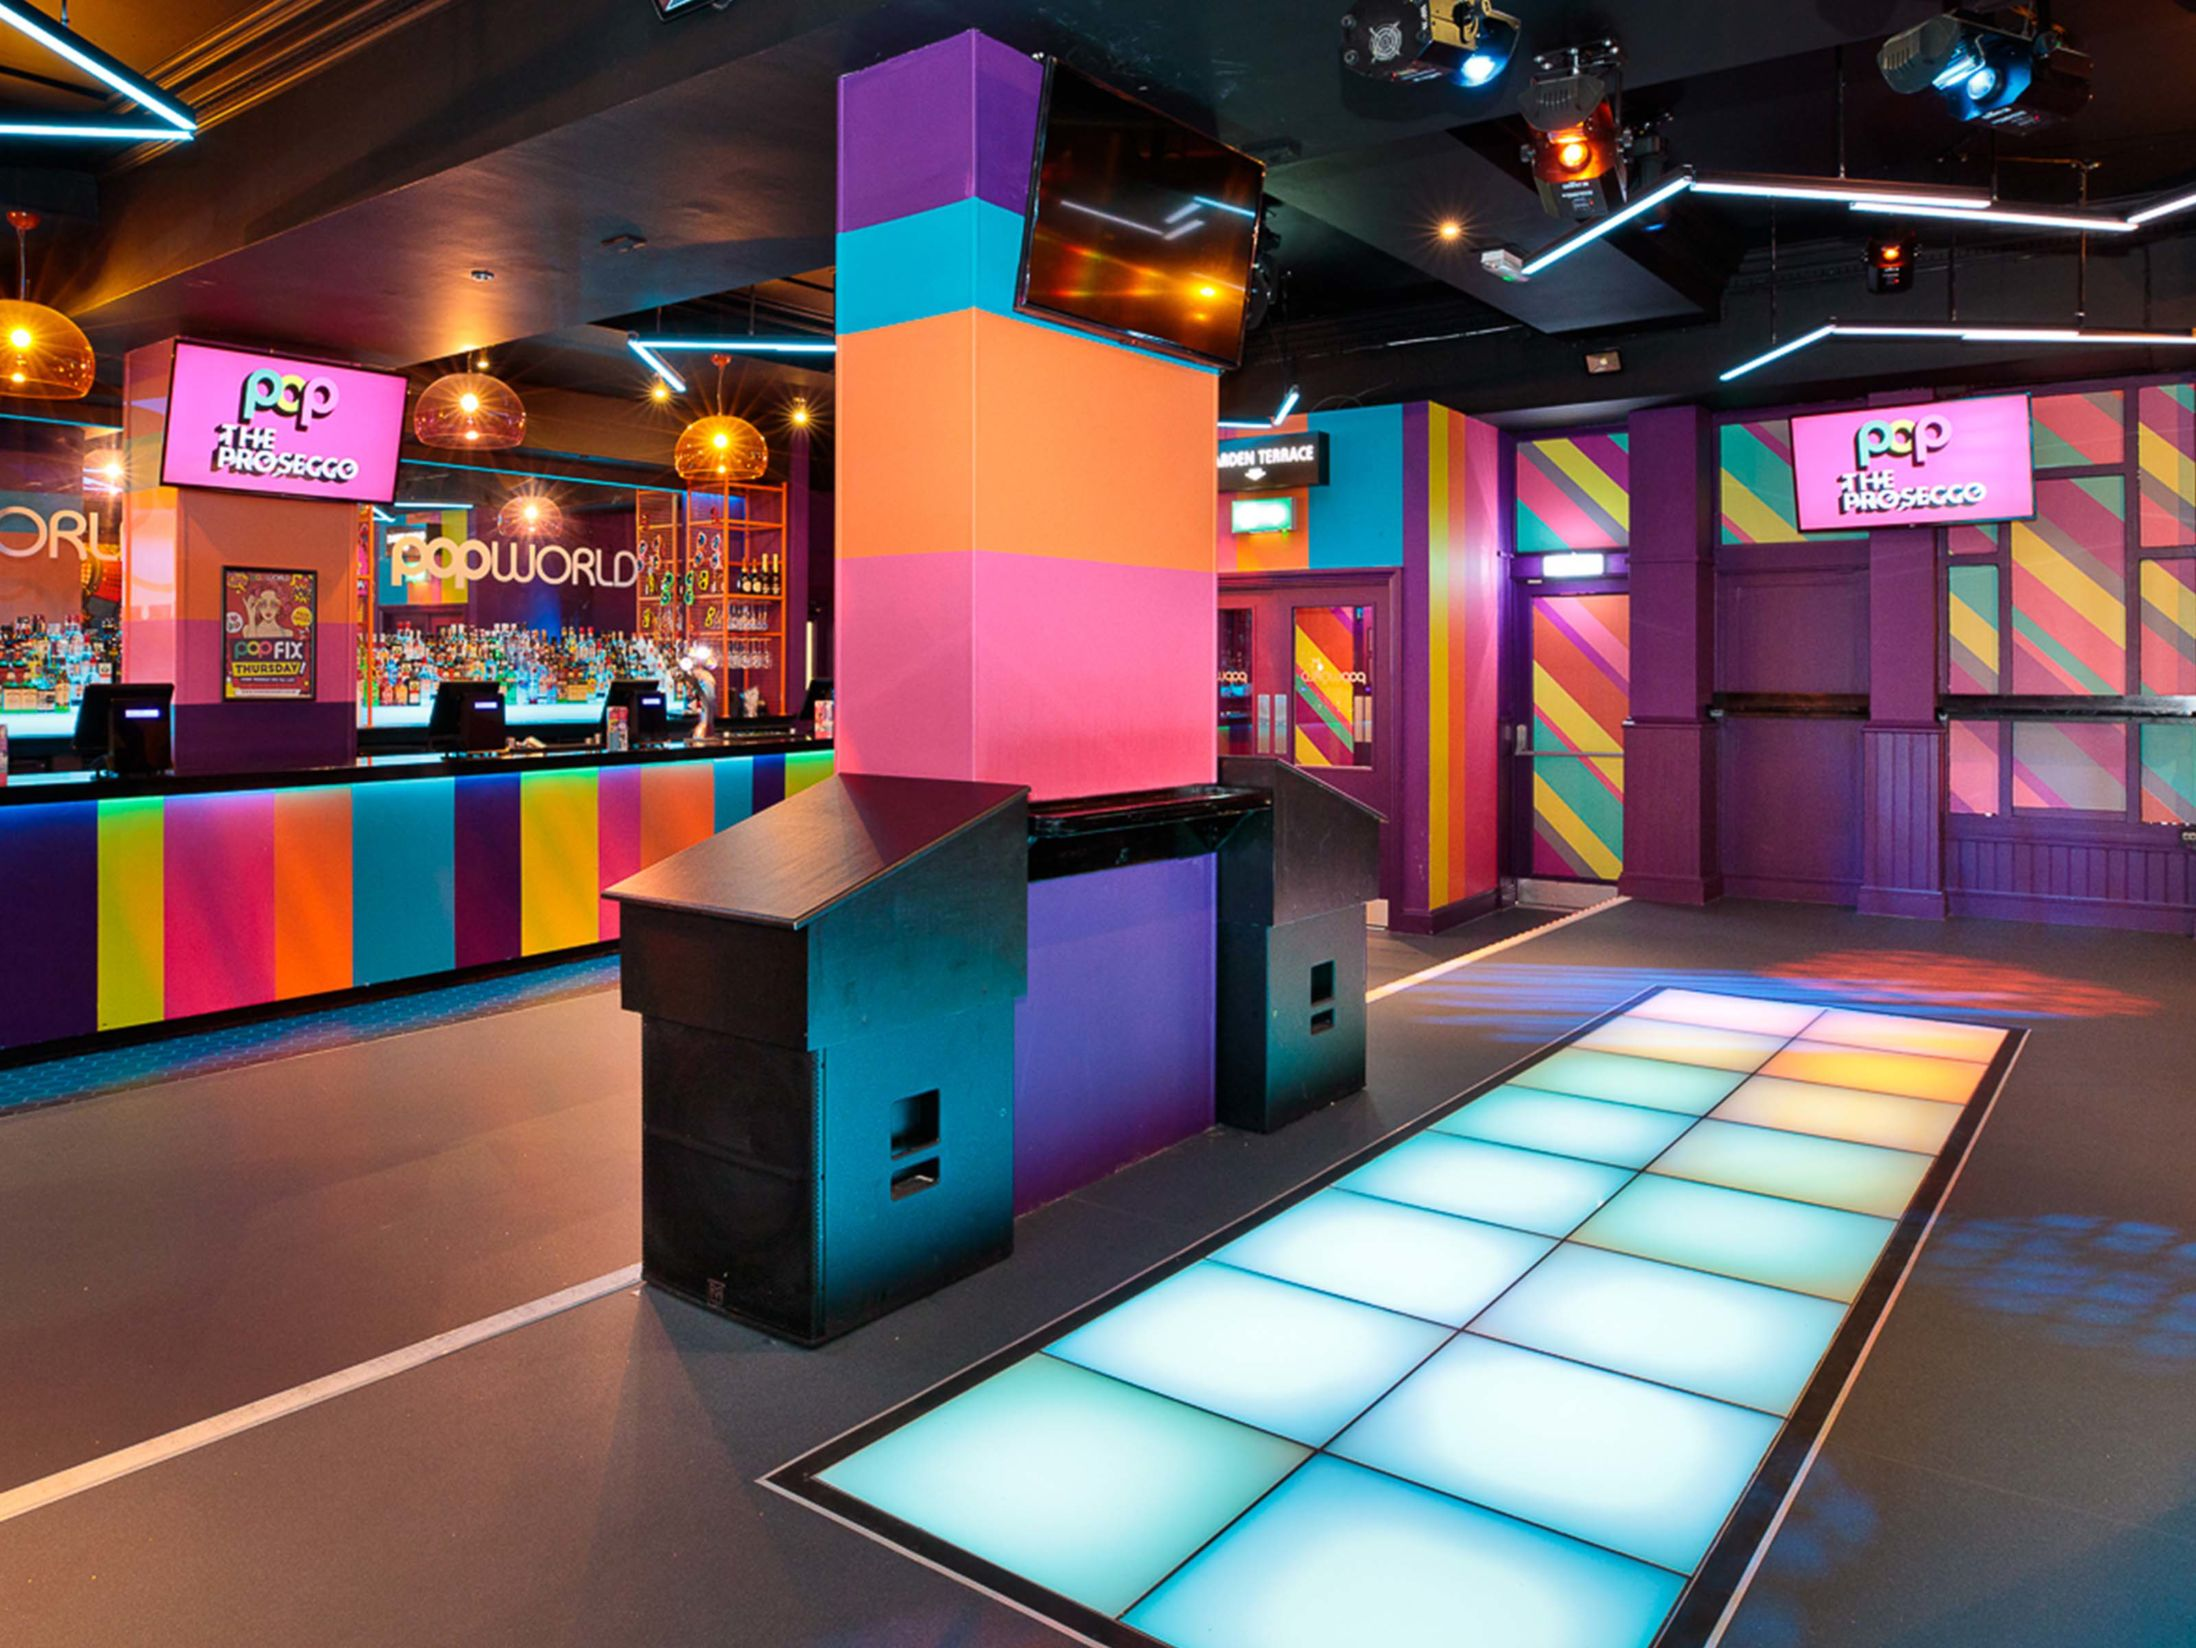 Best Clubs in Brighton - Popworld Brighton